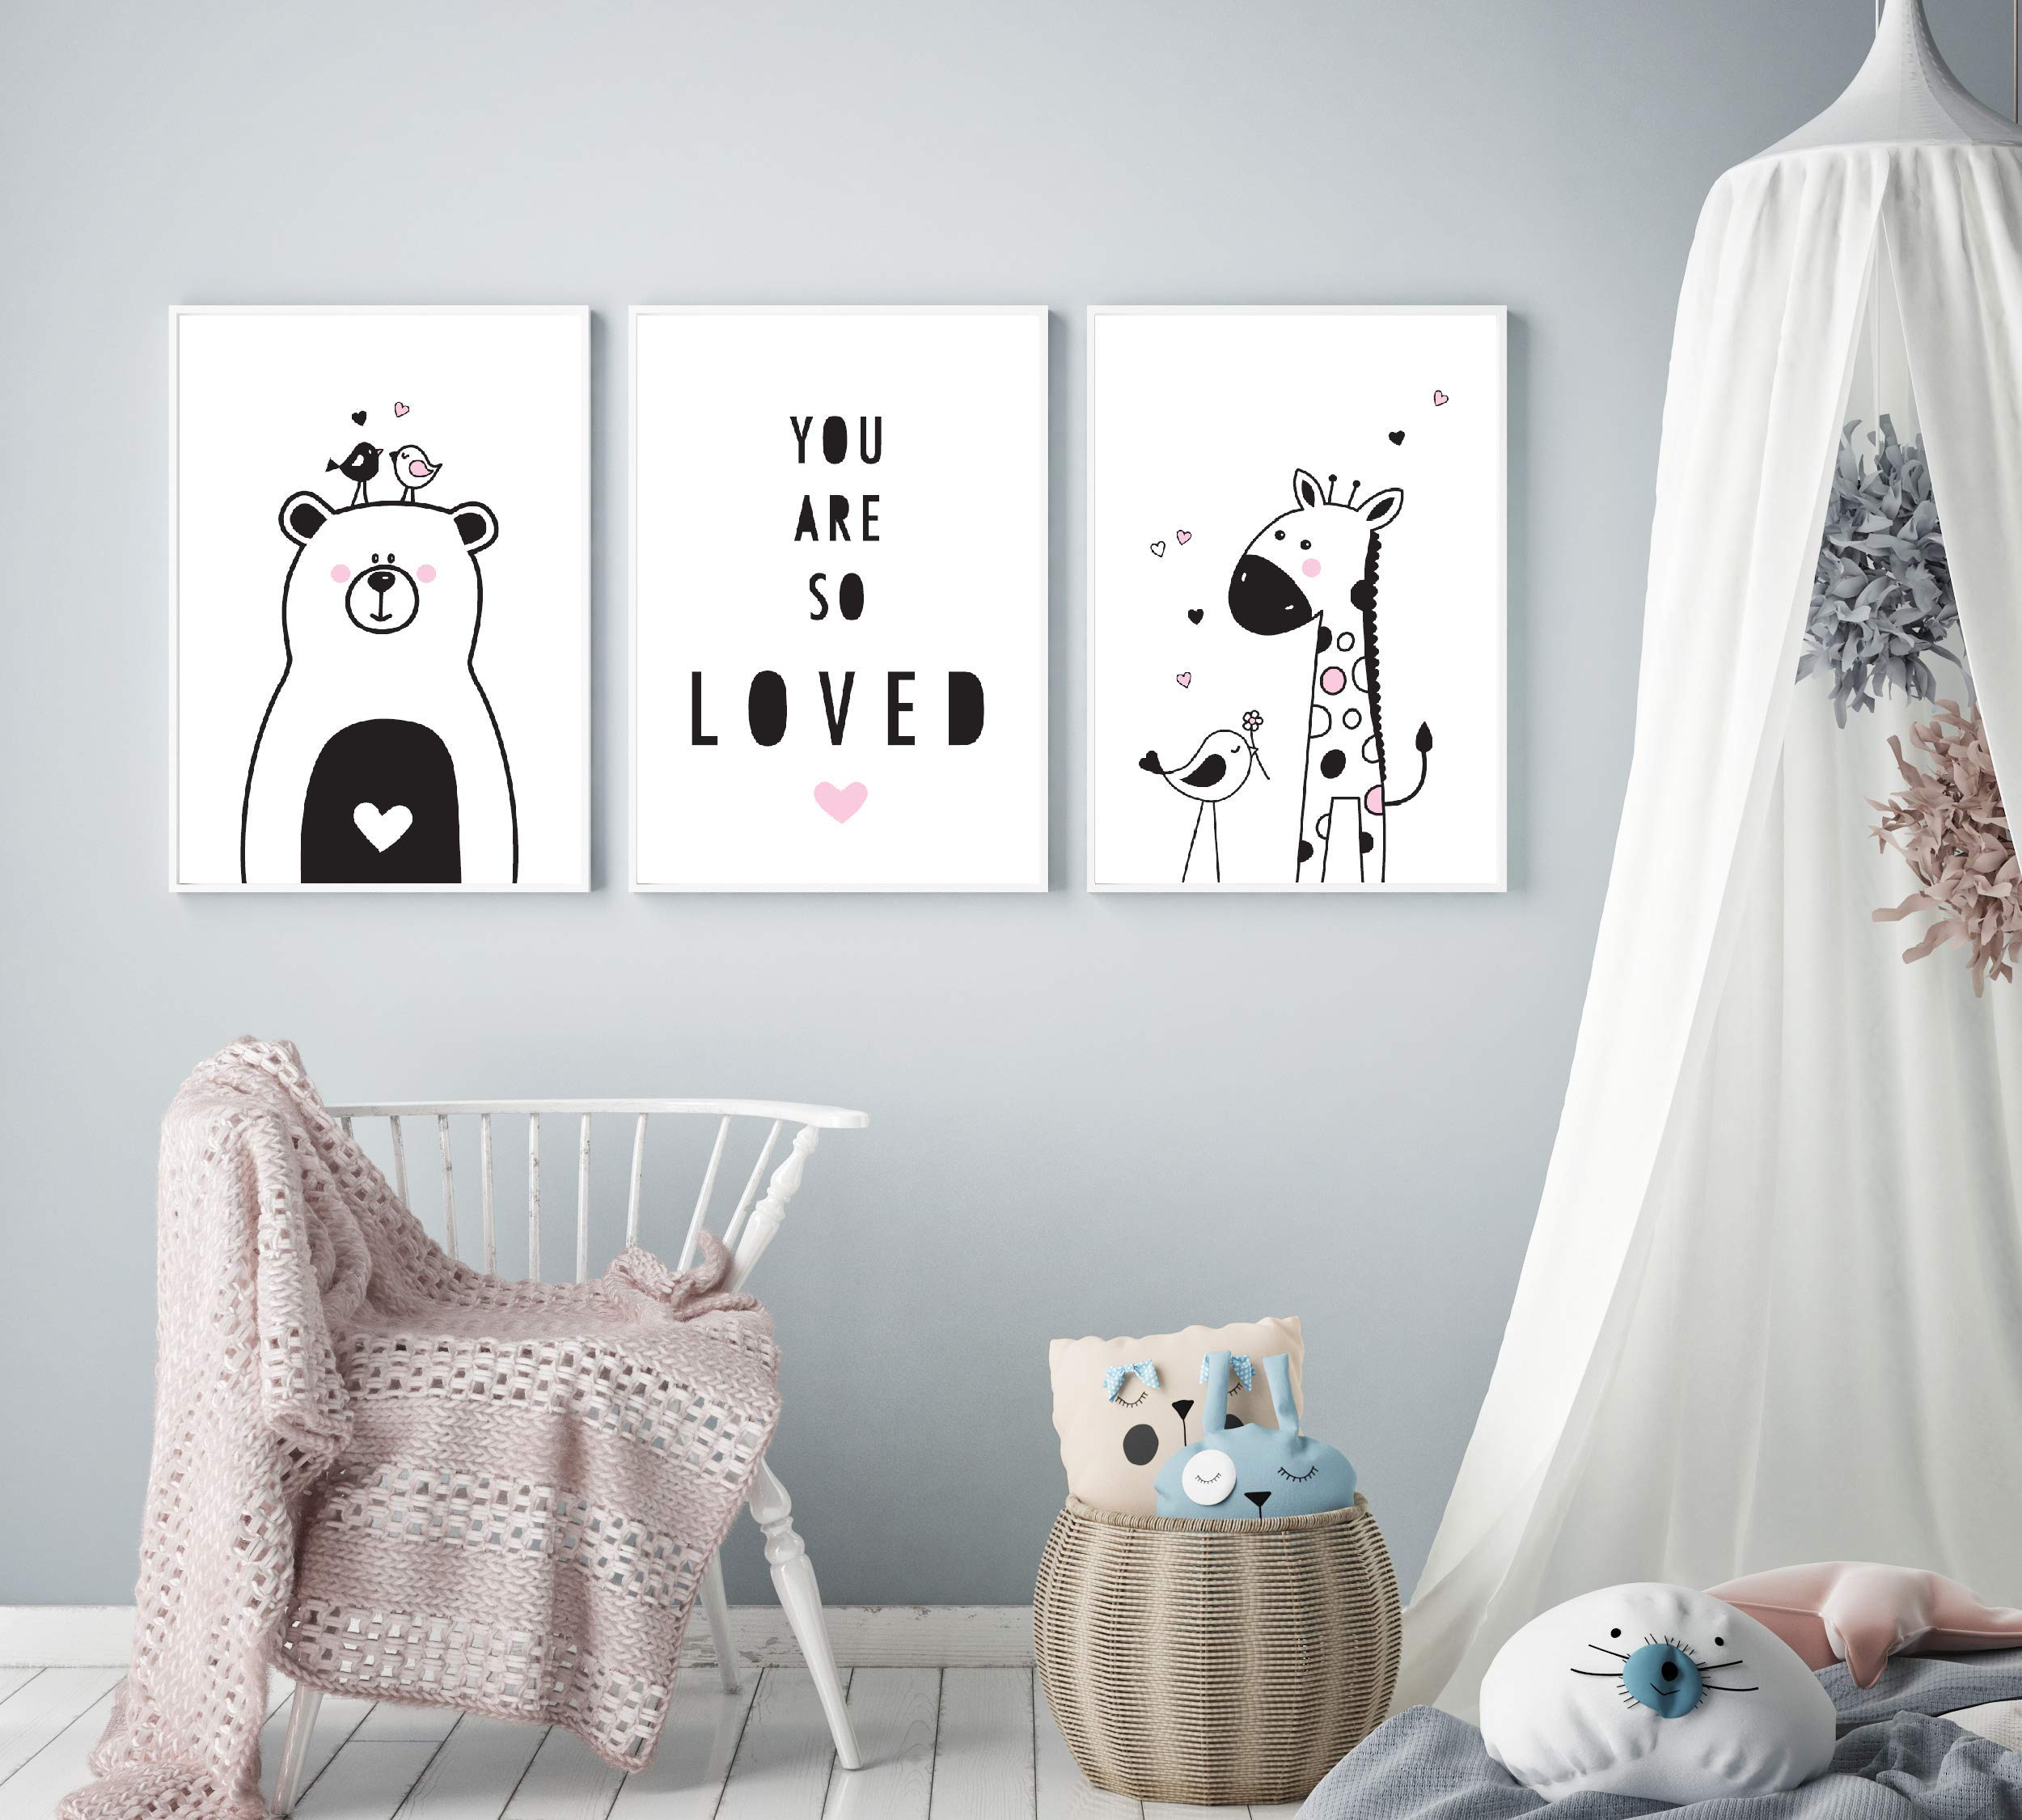 Modern Nursery Art by Mila Lou - Set of 3 - Framed - 10x12 - Cute Animals Kids Room Wall Decor (Pink Accents) by Mila Lou